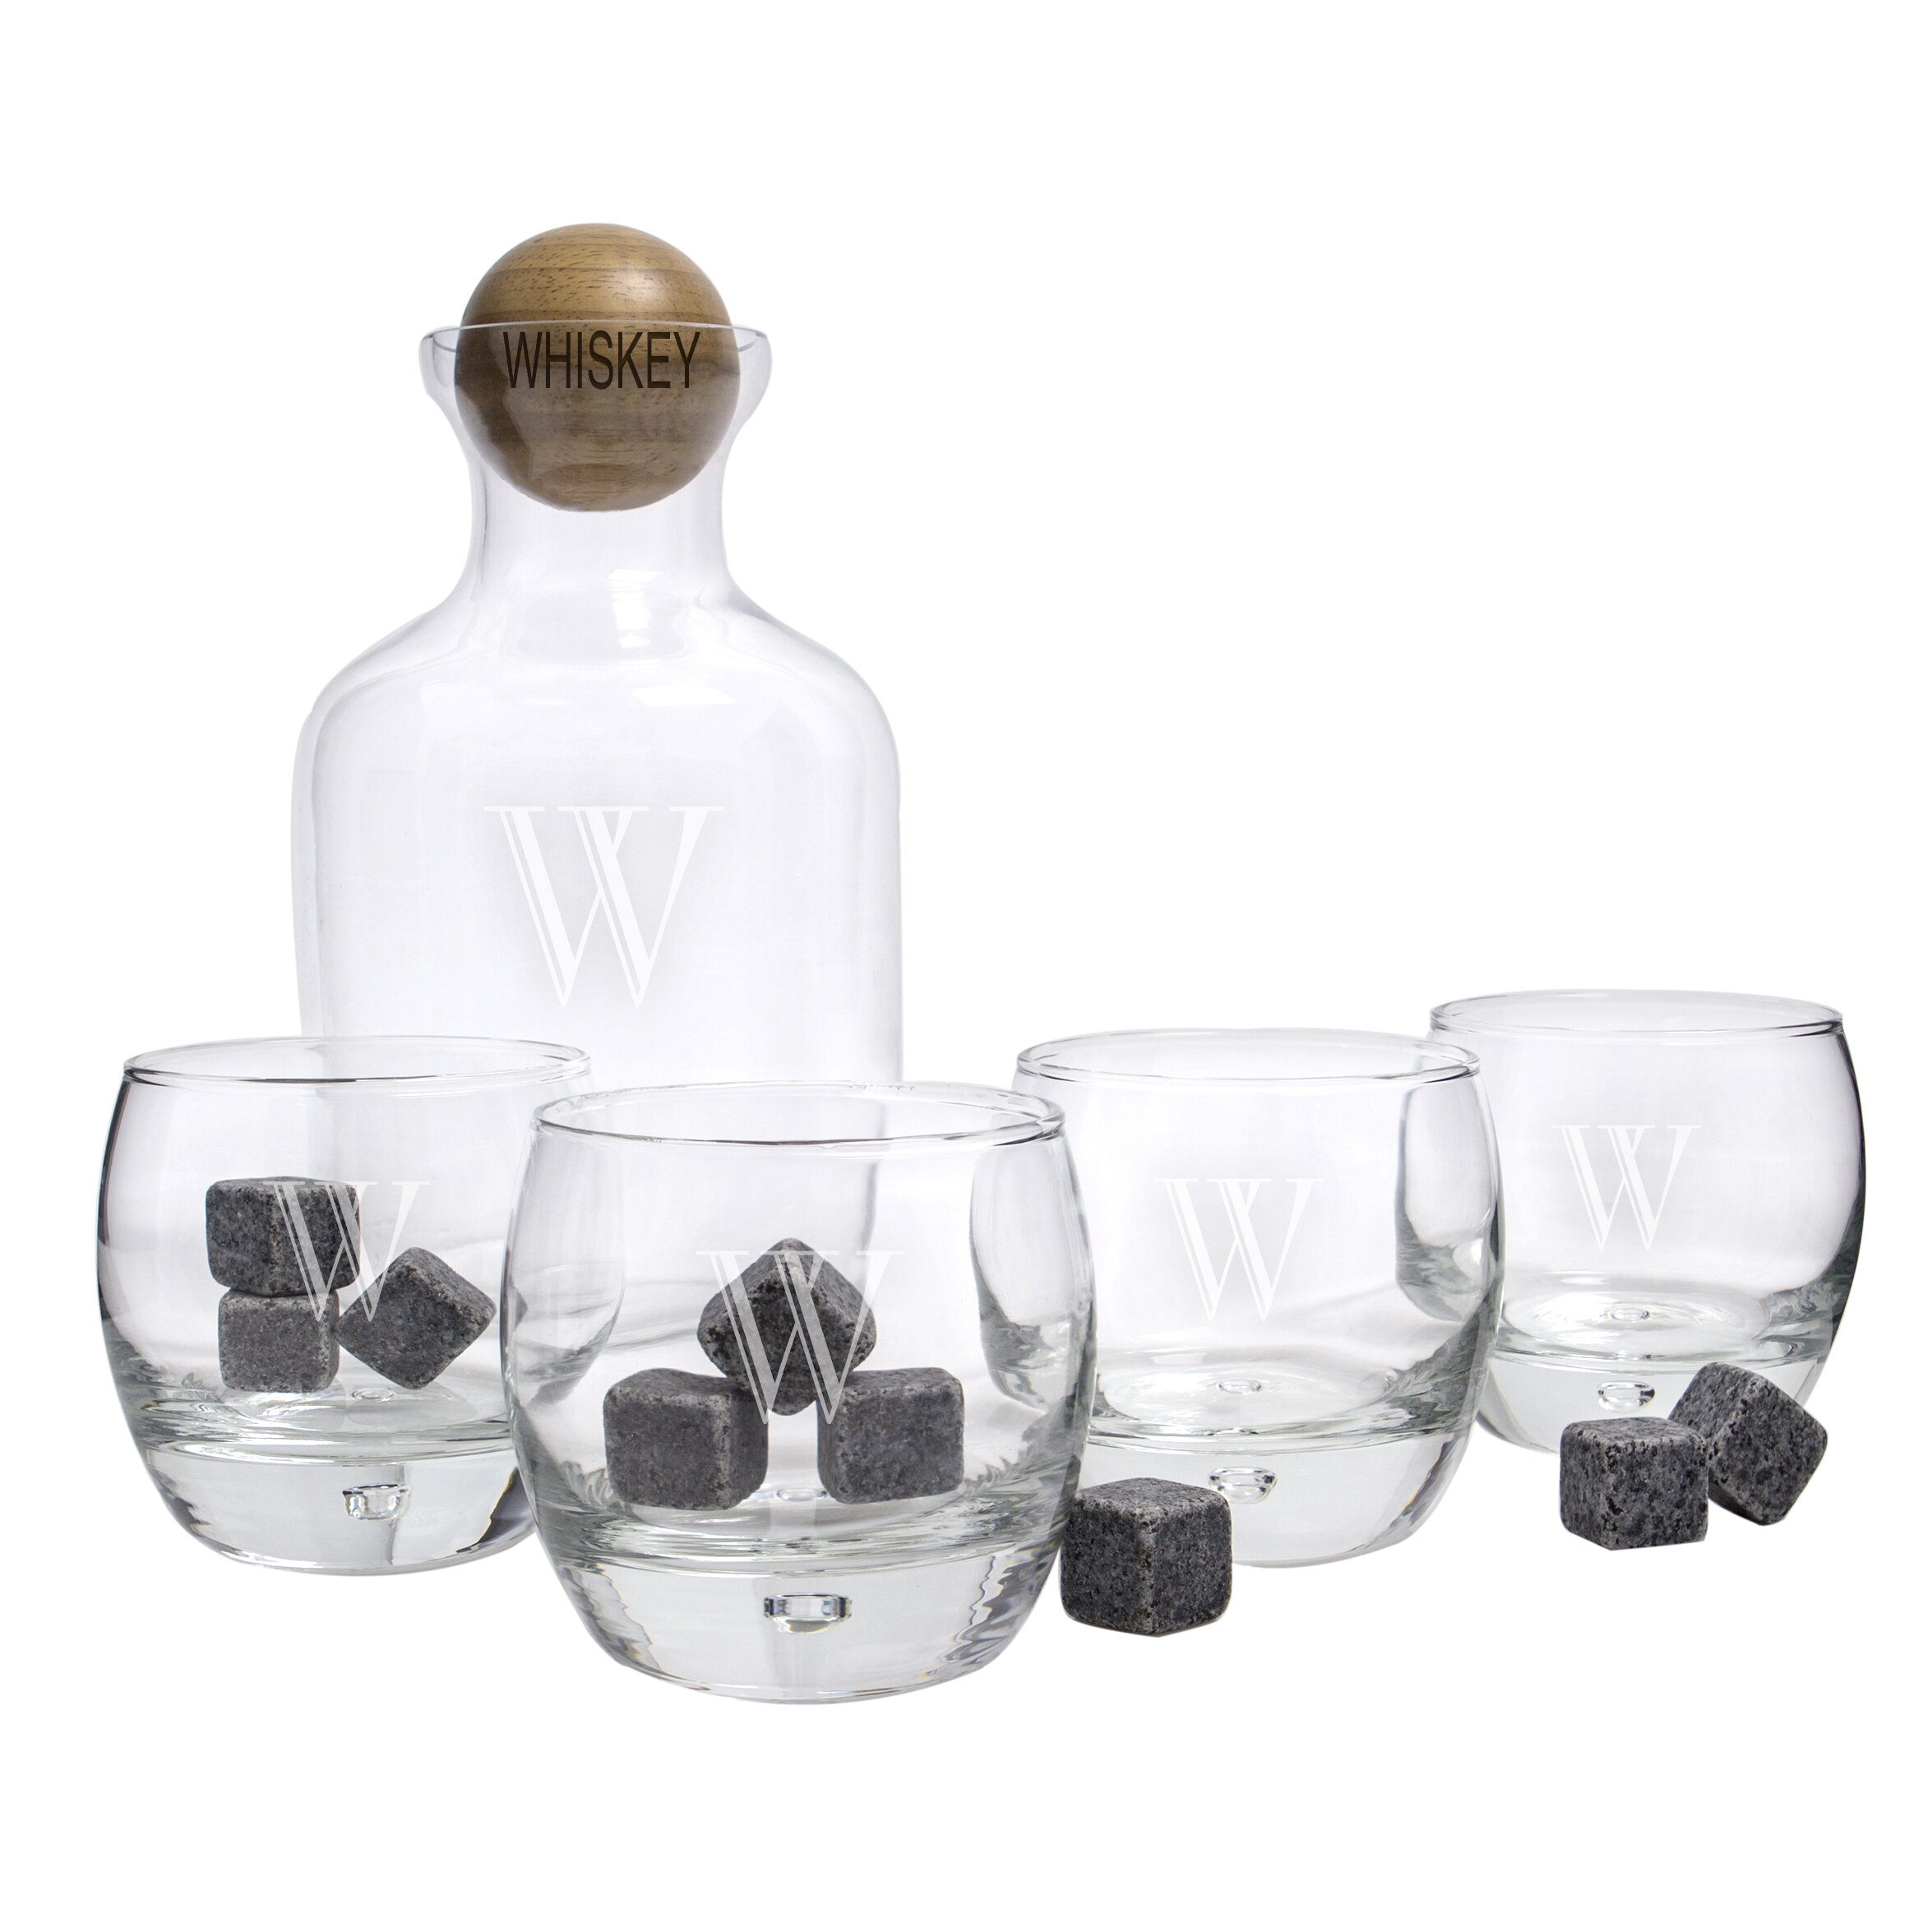 cathys concepts 5 piece personalized whiskey decanter set. Black Bedroom Furniture Sets. Home Design Ideas